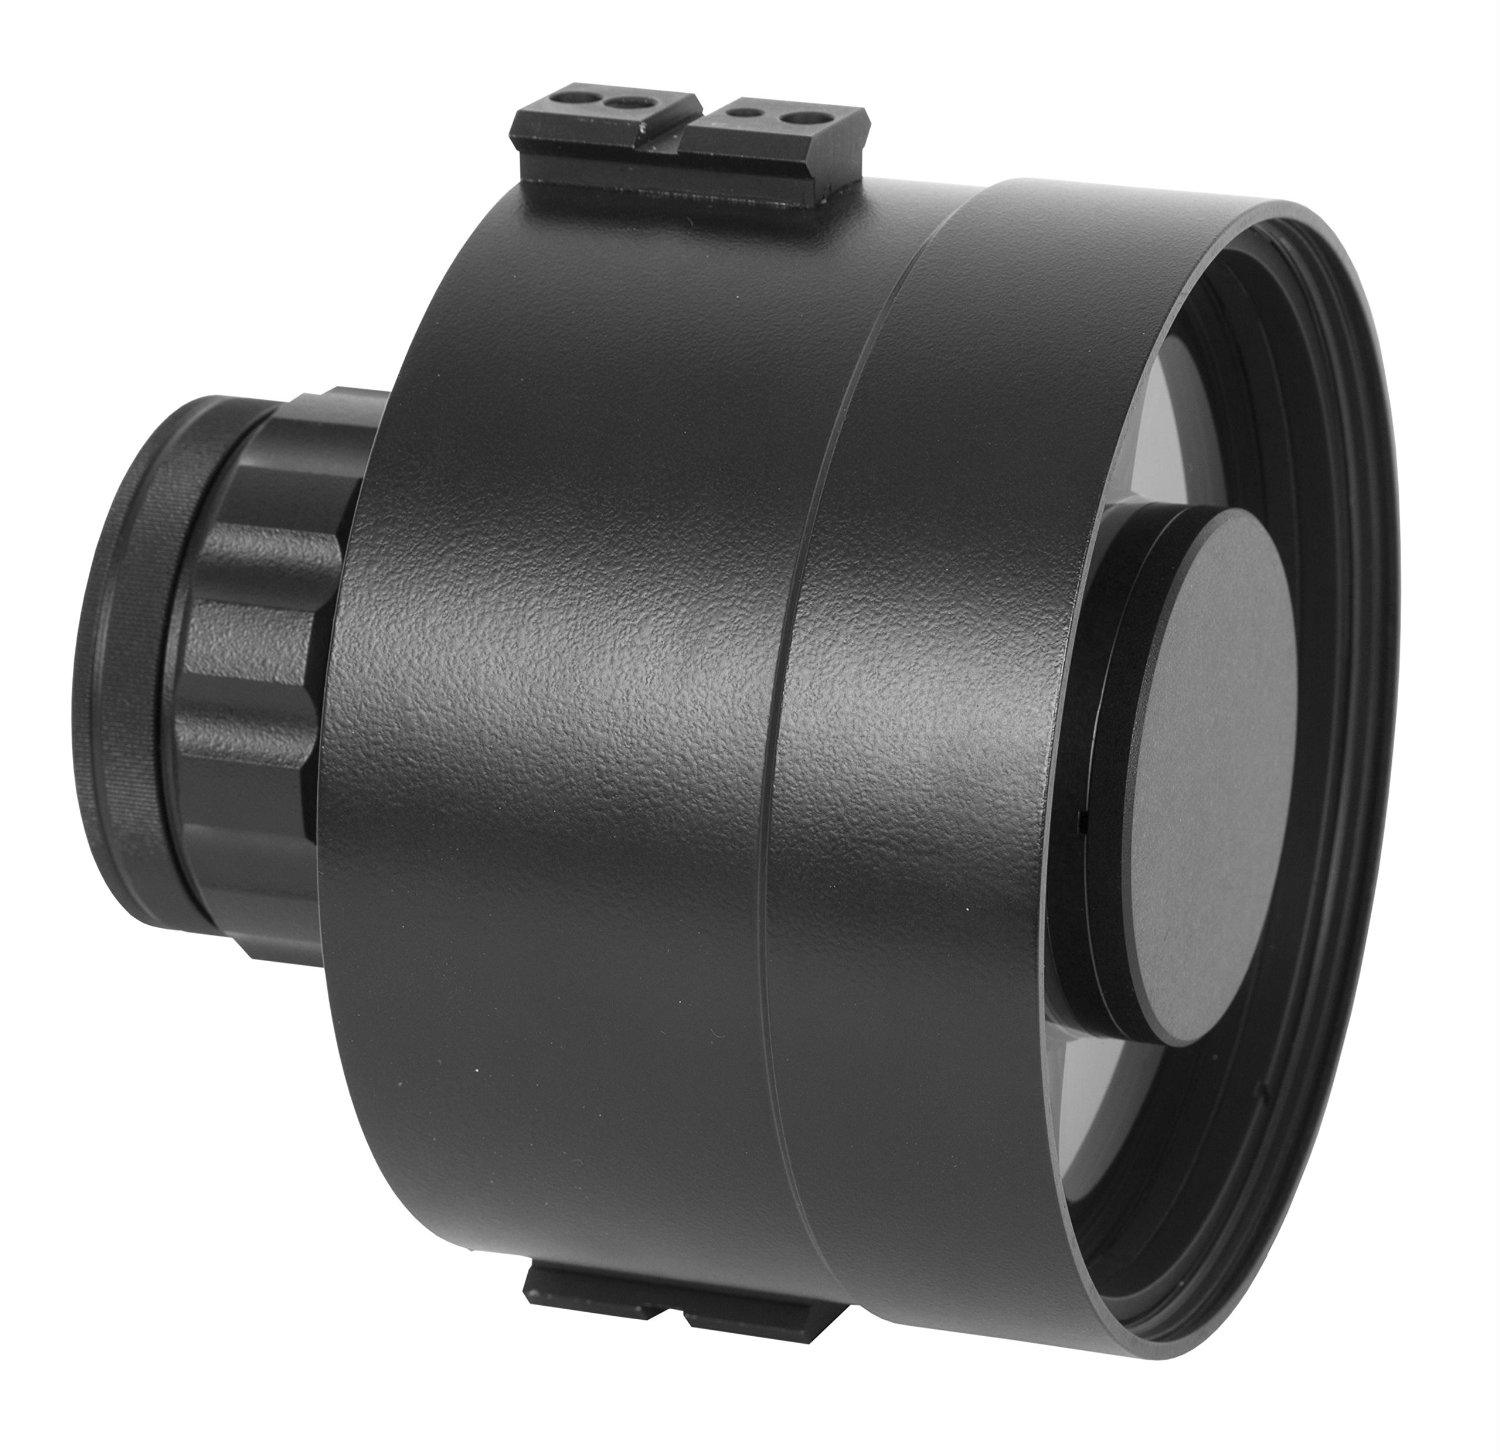 ATN Catadioptric Lens for NVG-7, 8x